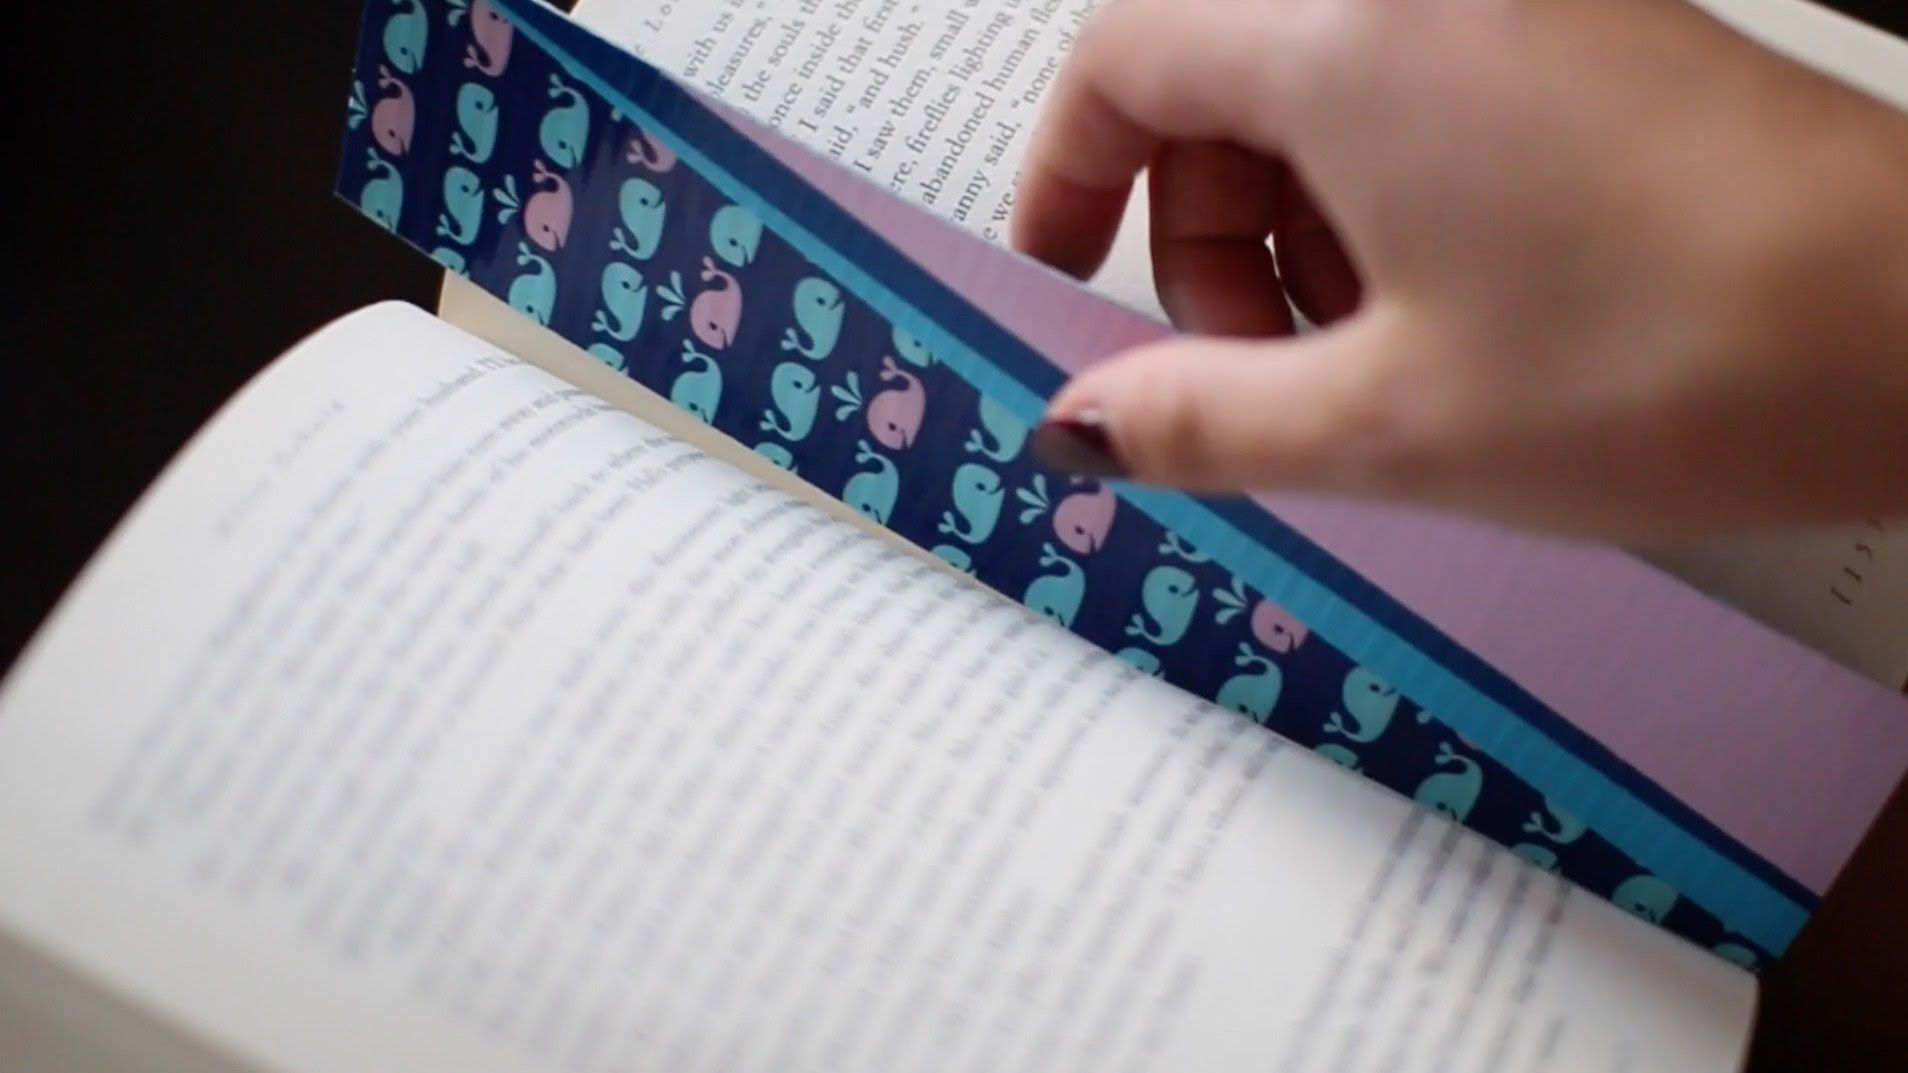 How To Make A Duck Tape Bookmark With Laurdiy With Images Duck